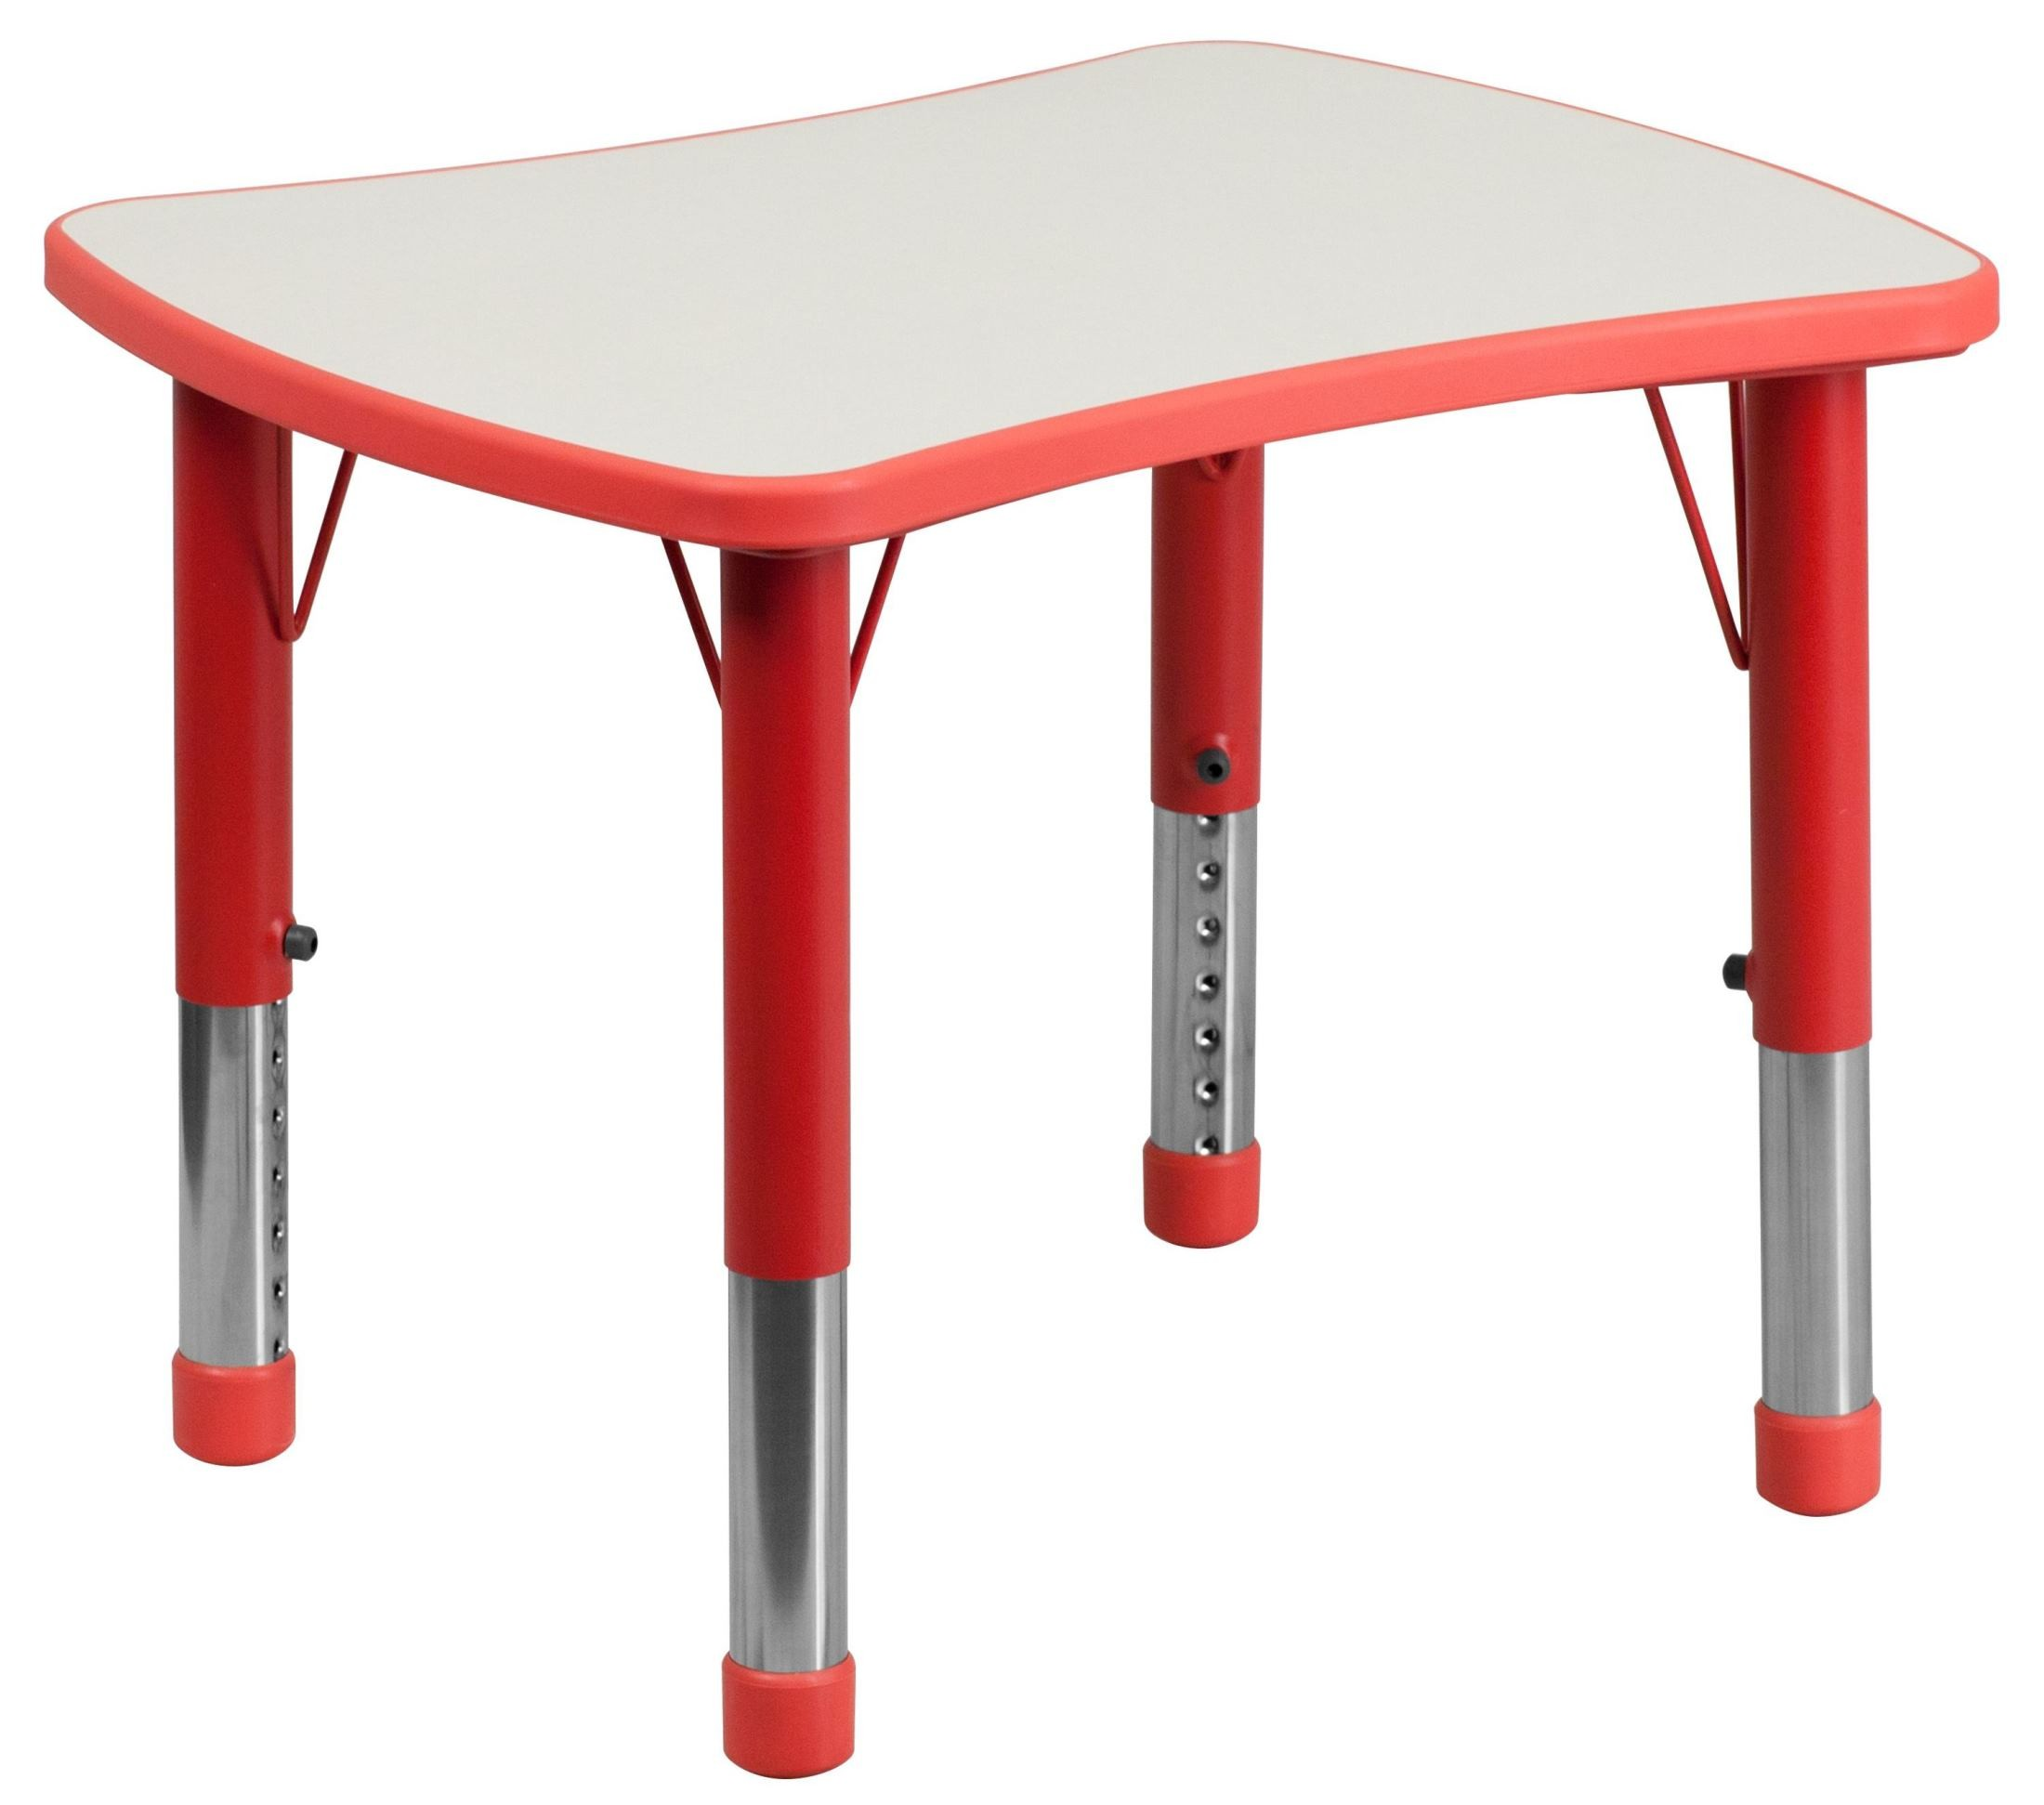 Adjustable Height Activity Table Height Adjustable Rectangular Red Plastic Activity Table